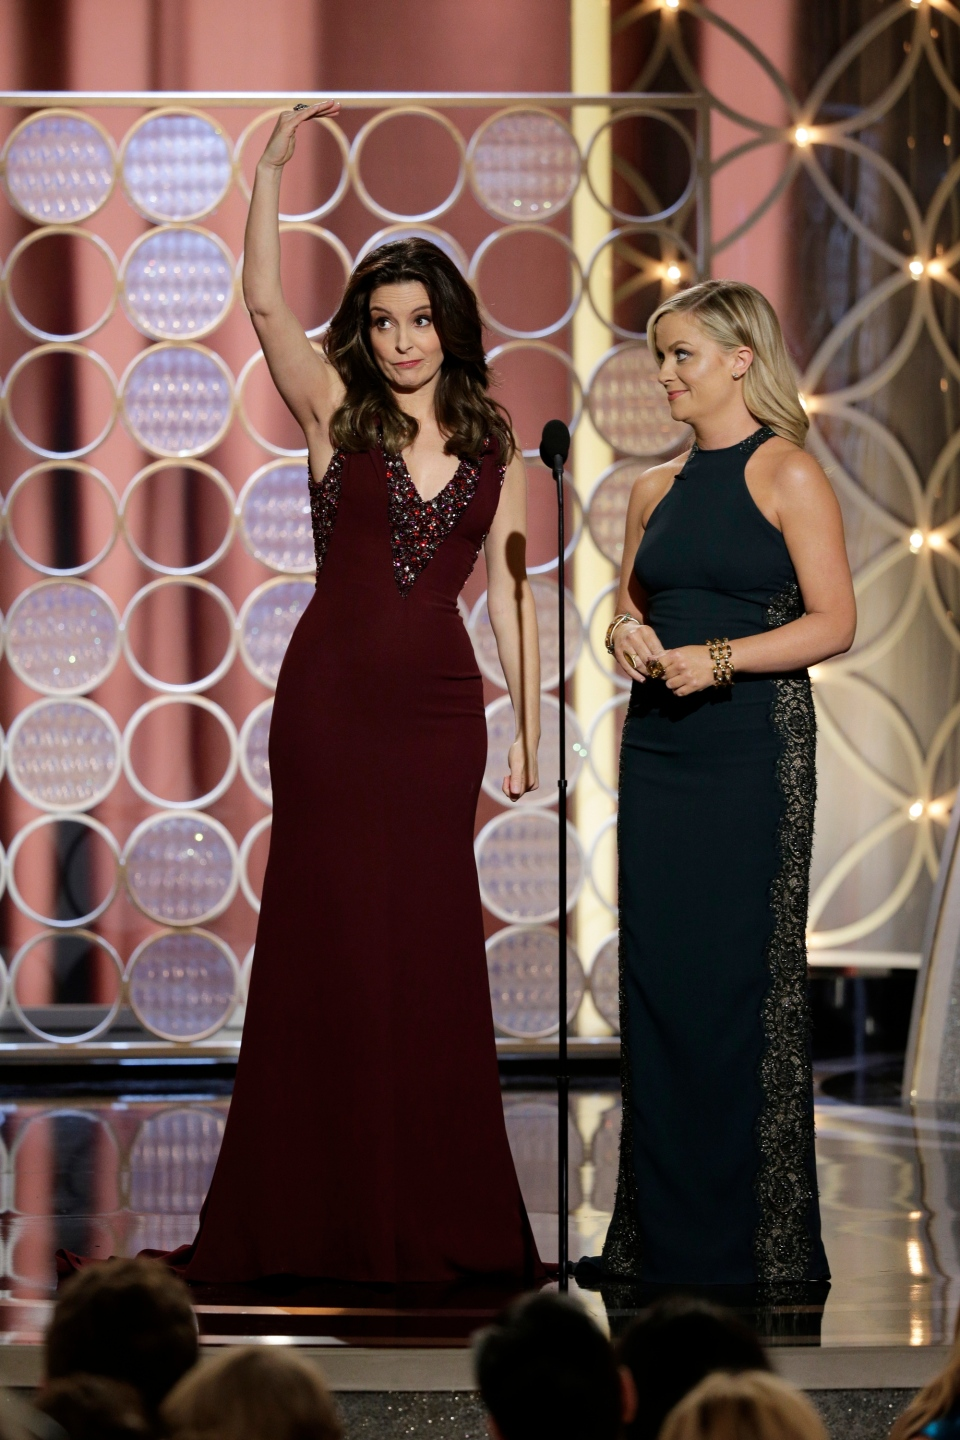 Tina Fey, left, and Amy Poehler are shown during the 71st annual Golden Globe Awards at the Beverly Hilton Hotel on Jan. 12, 2014, in Beverly Hills, Calif. (AP / Paul Drinkwater)